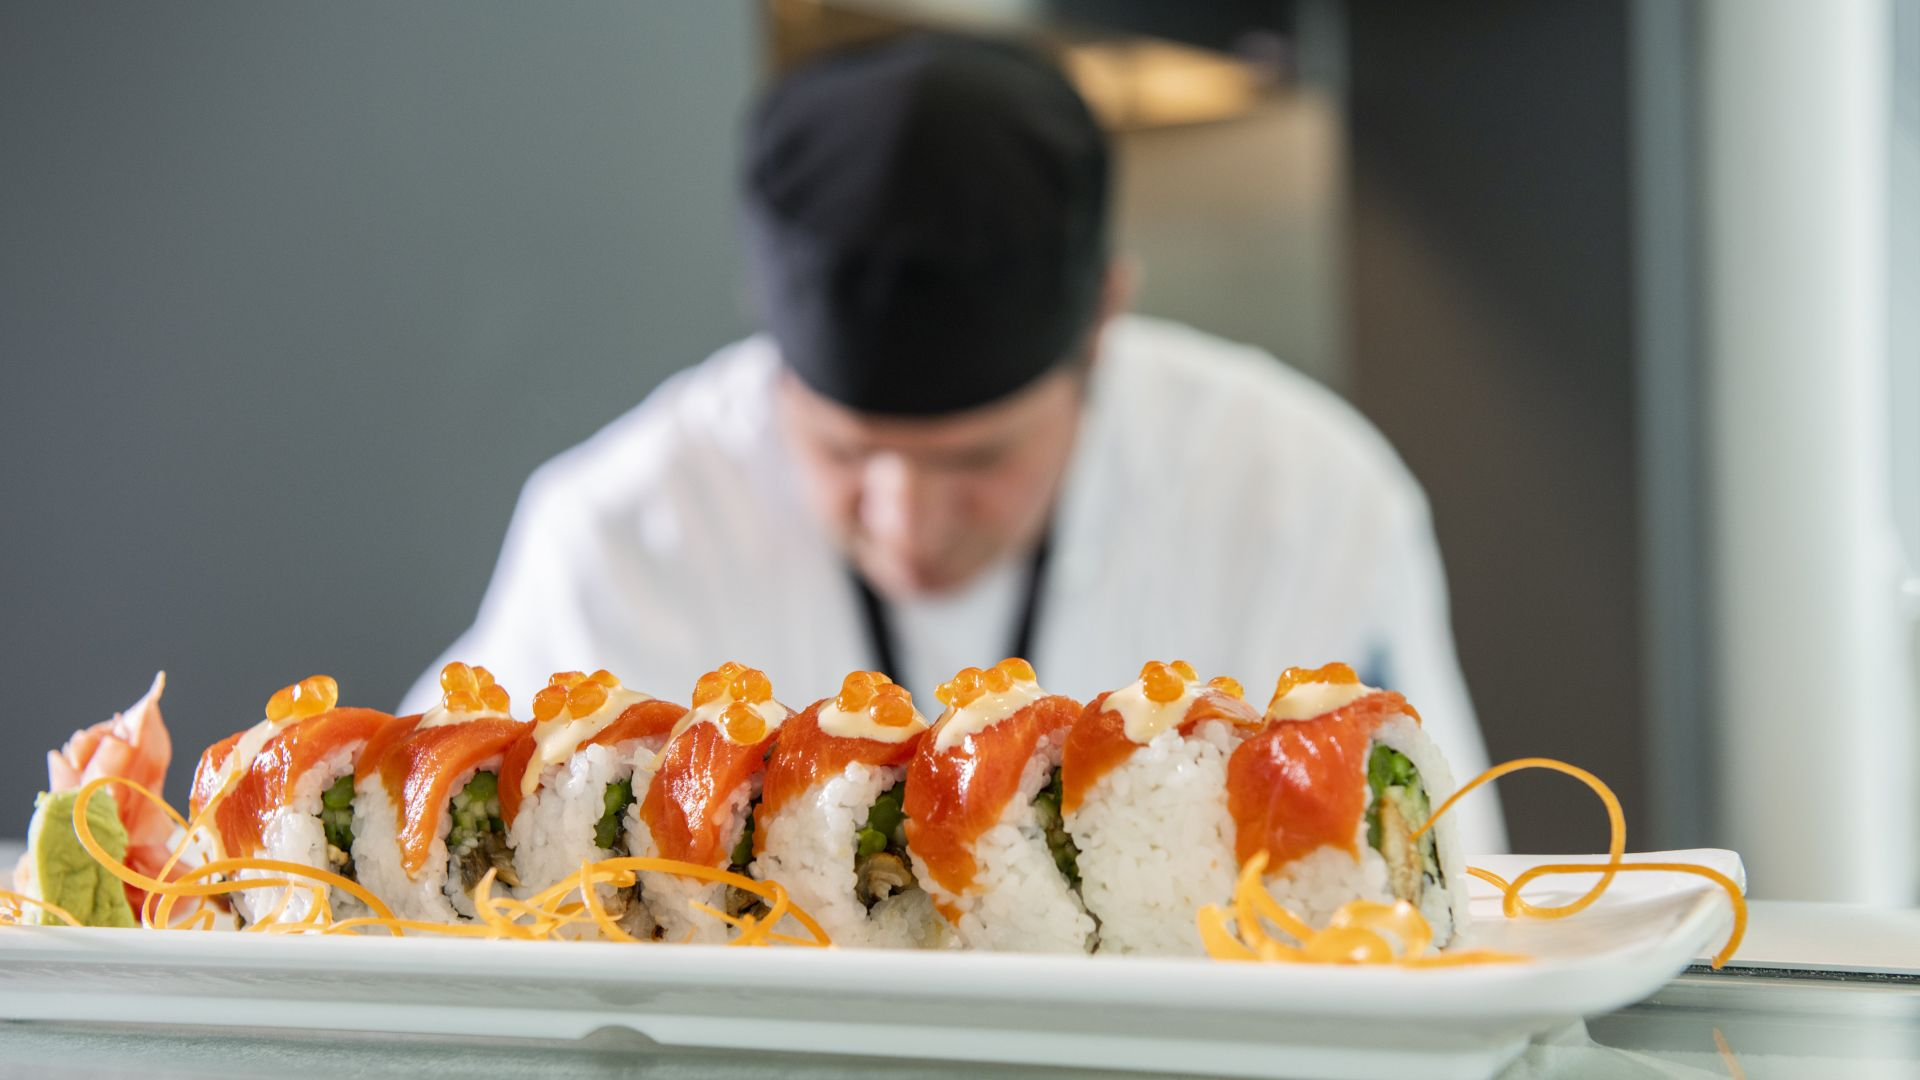 A Person Sitting At A Table With A Plate Of Sushi